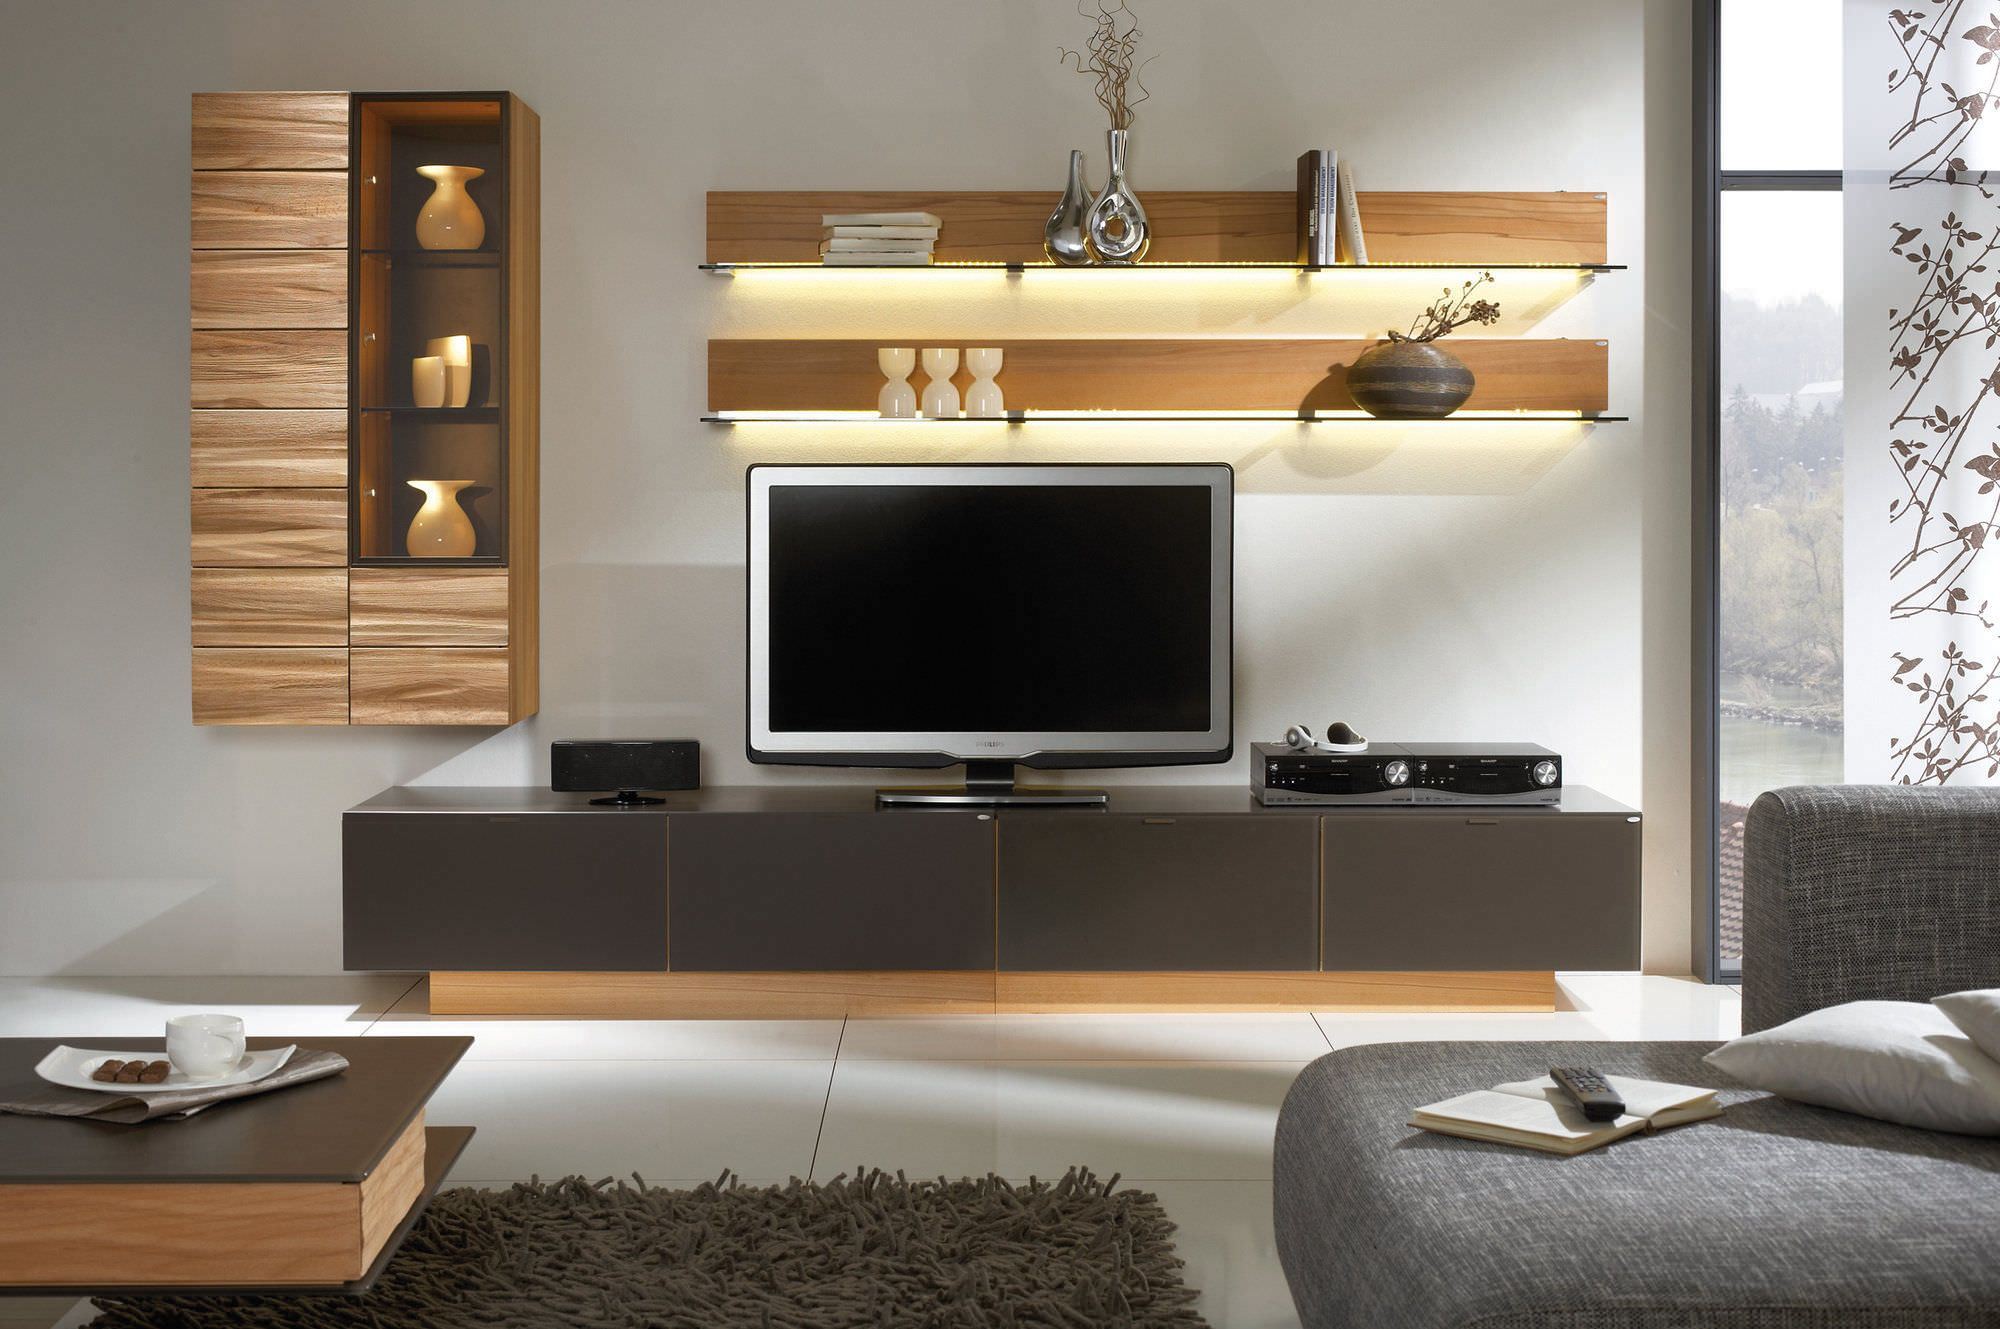 Design Tv Rack Cool Tv Rack With Tv Rack With Design Tv Rack Awesome White Brown Wood Glass Cool Design Contemporary Tv Wall